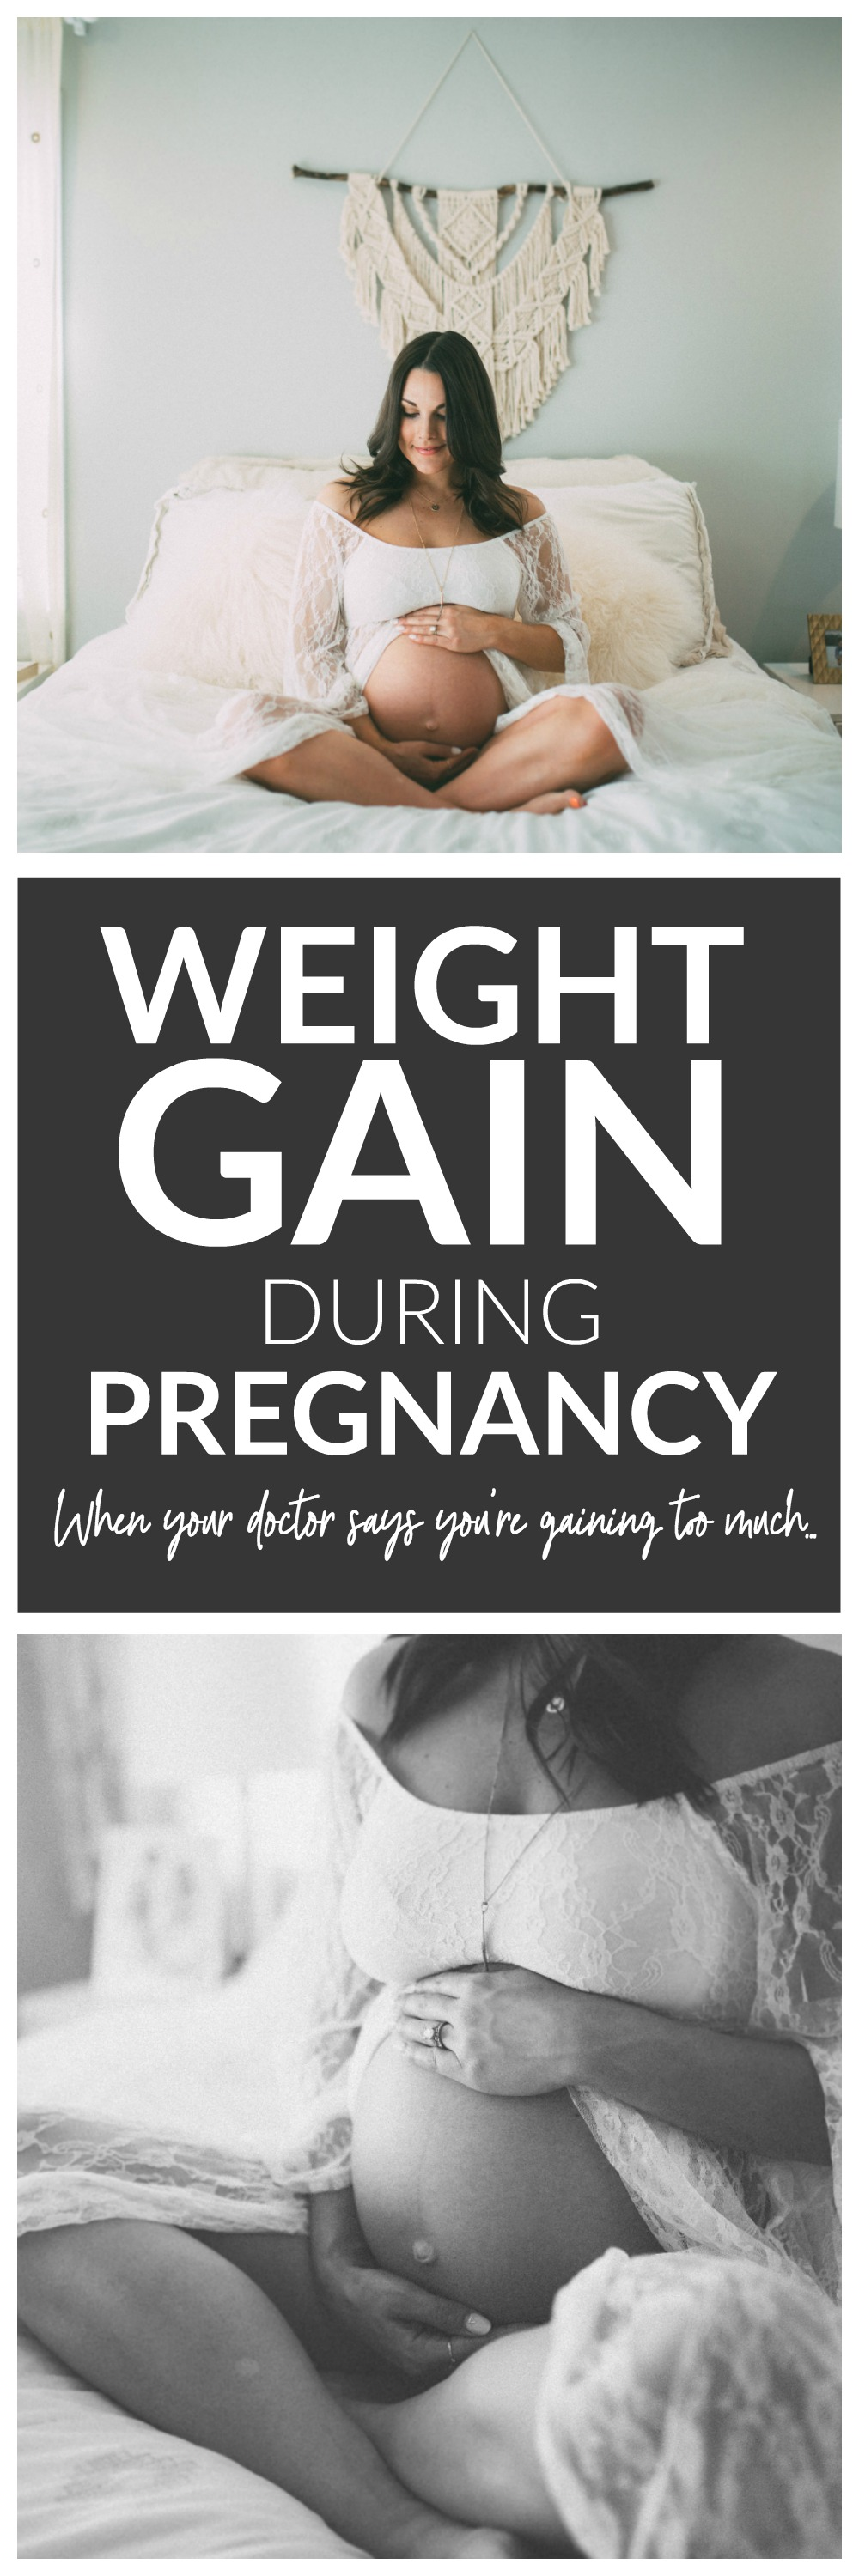 Weight Gain During Pregnancy - what to do when your doctor says you're gaining too much.